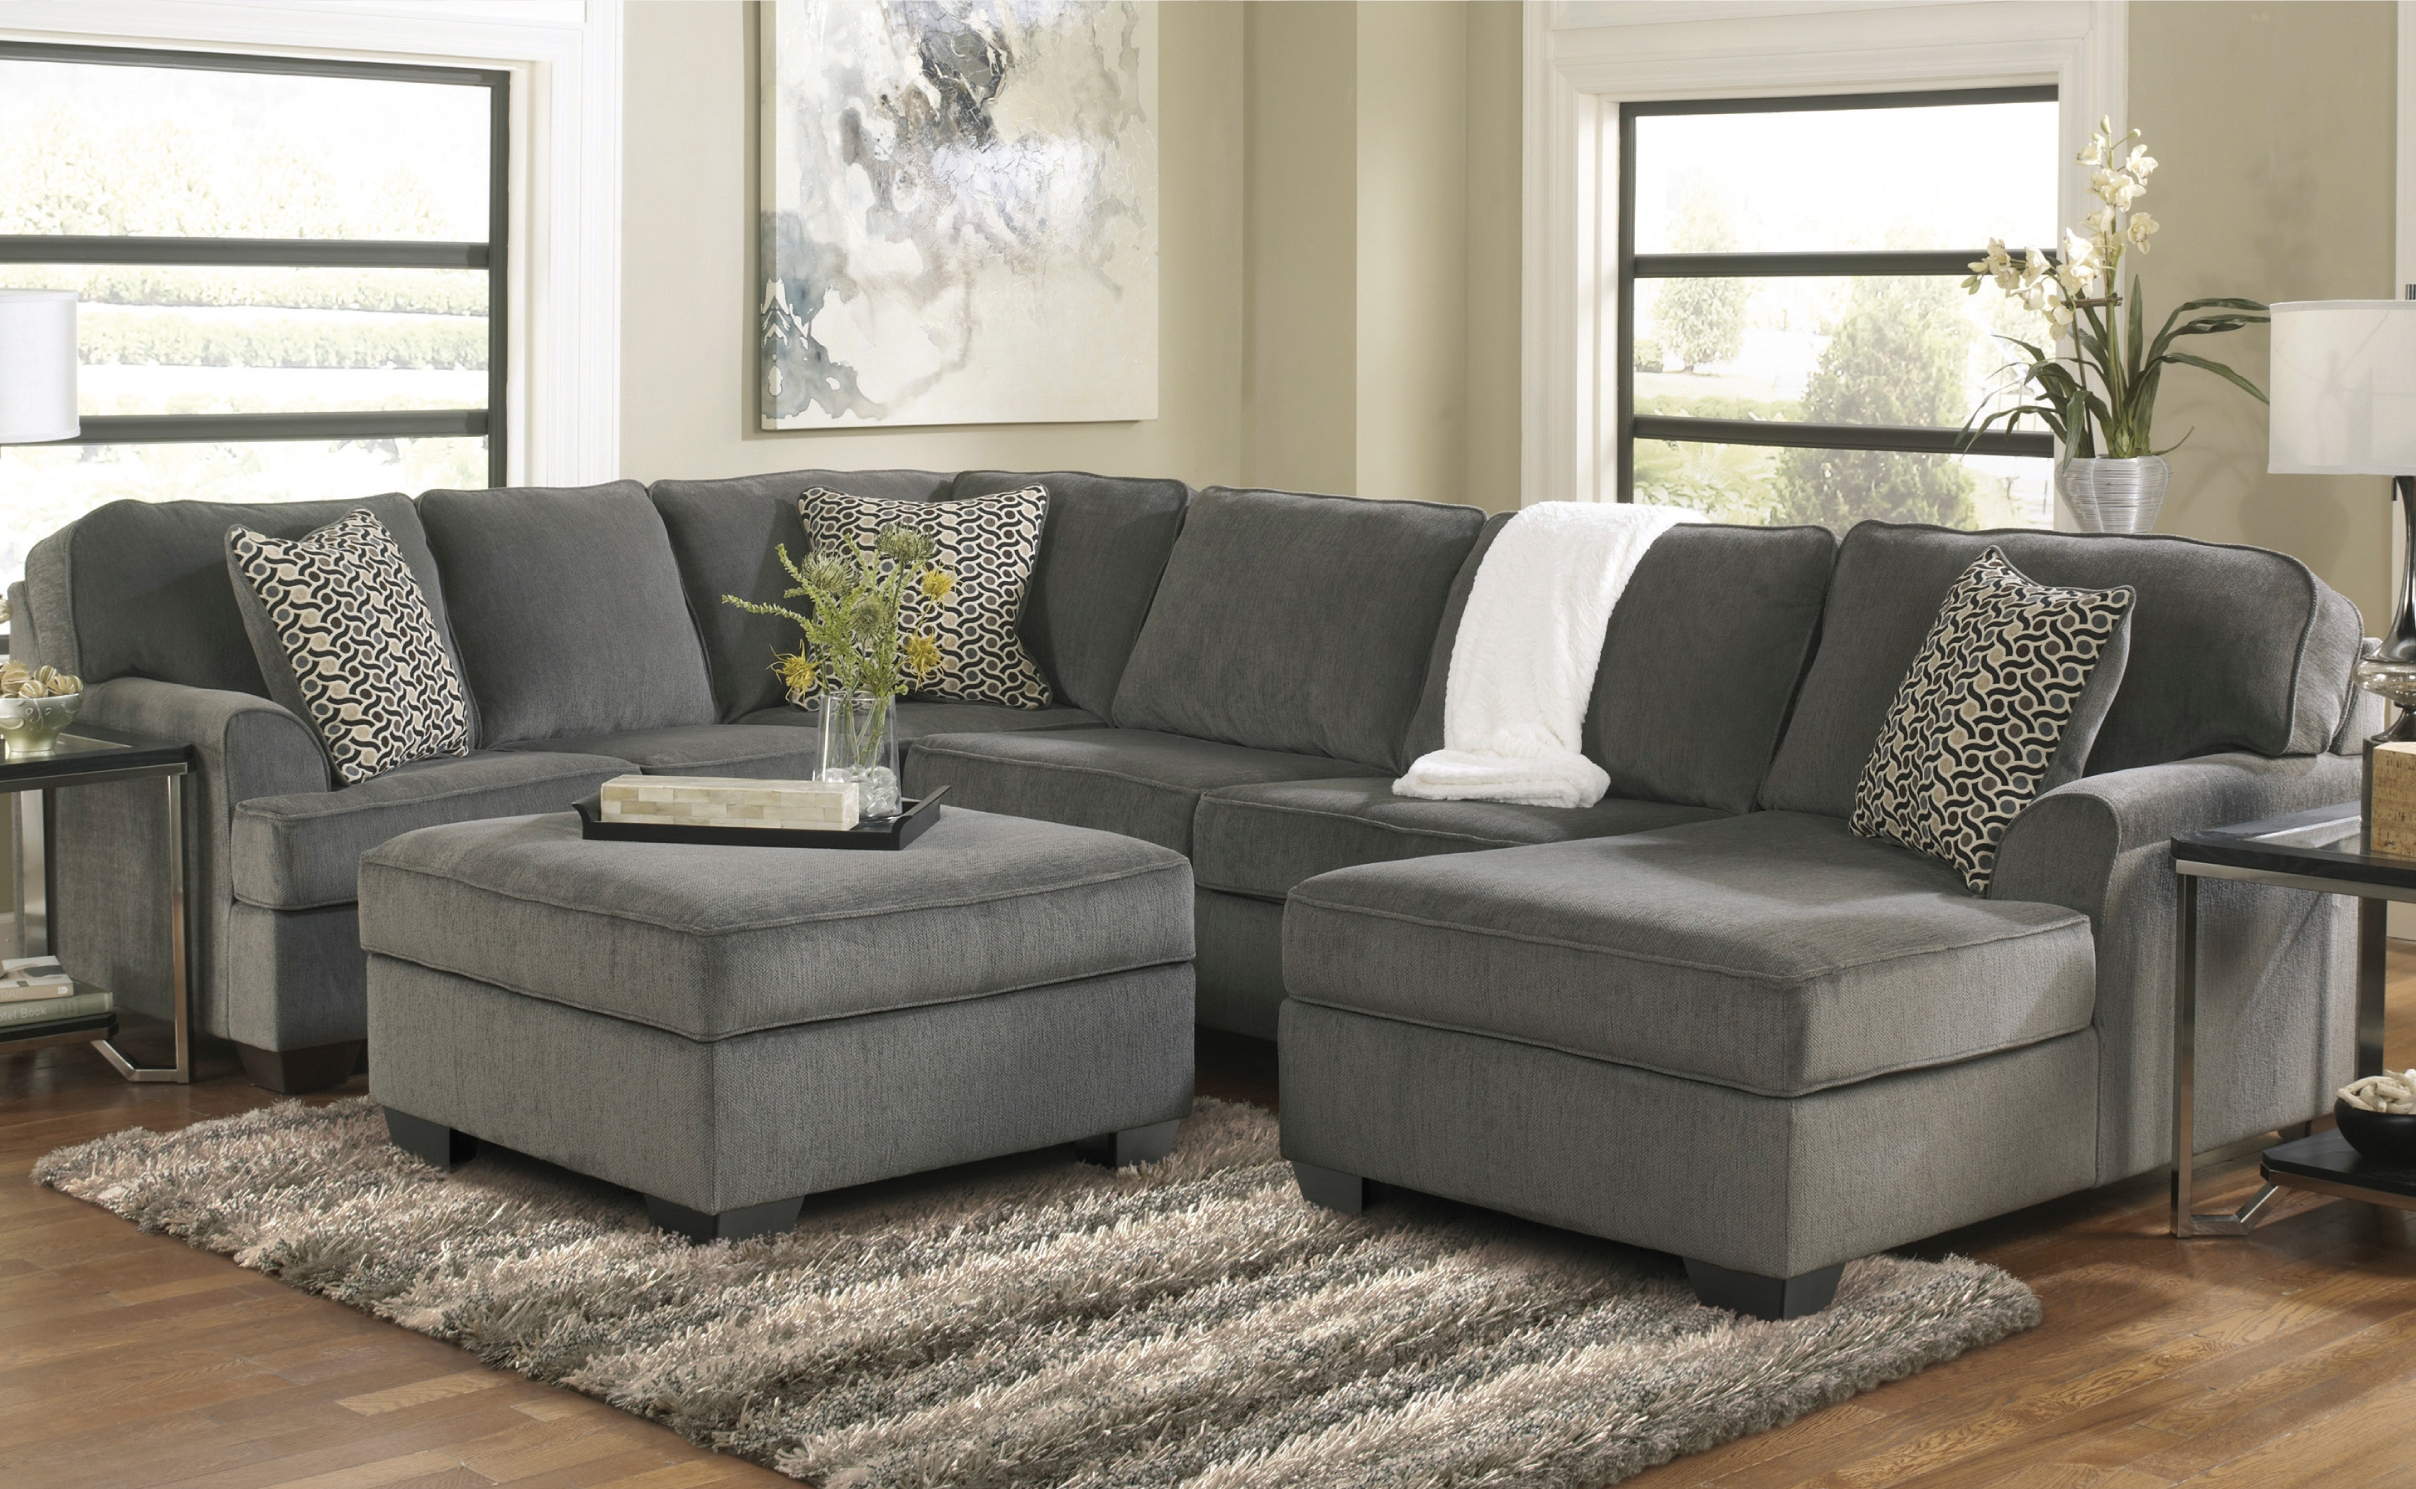 Clearance Furniture In Chicago Darvin Clearance Regarding Closeout Sectional Sofas (View 3 of 15)